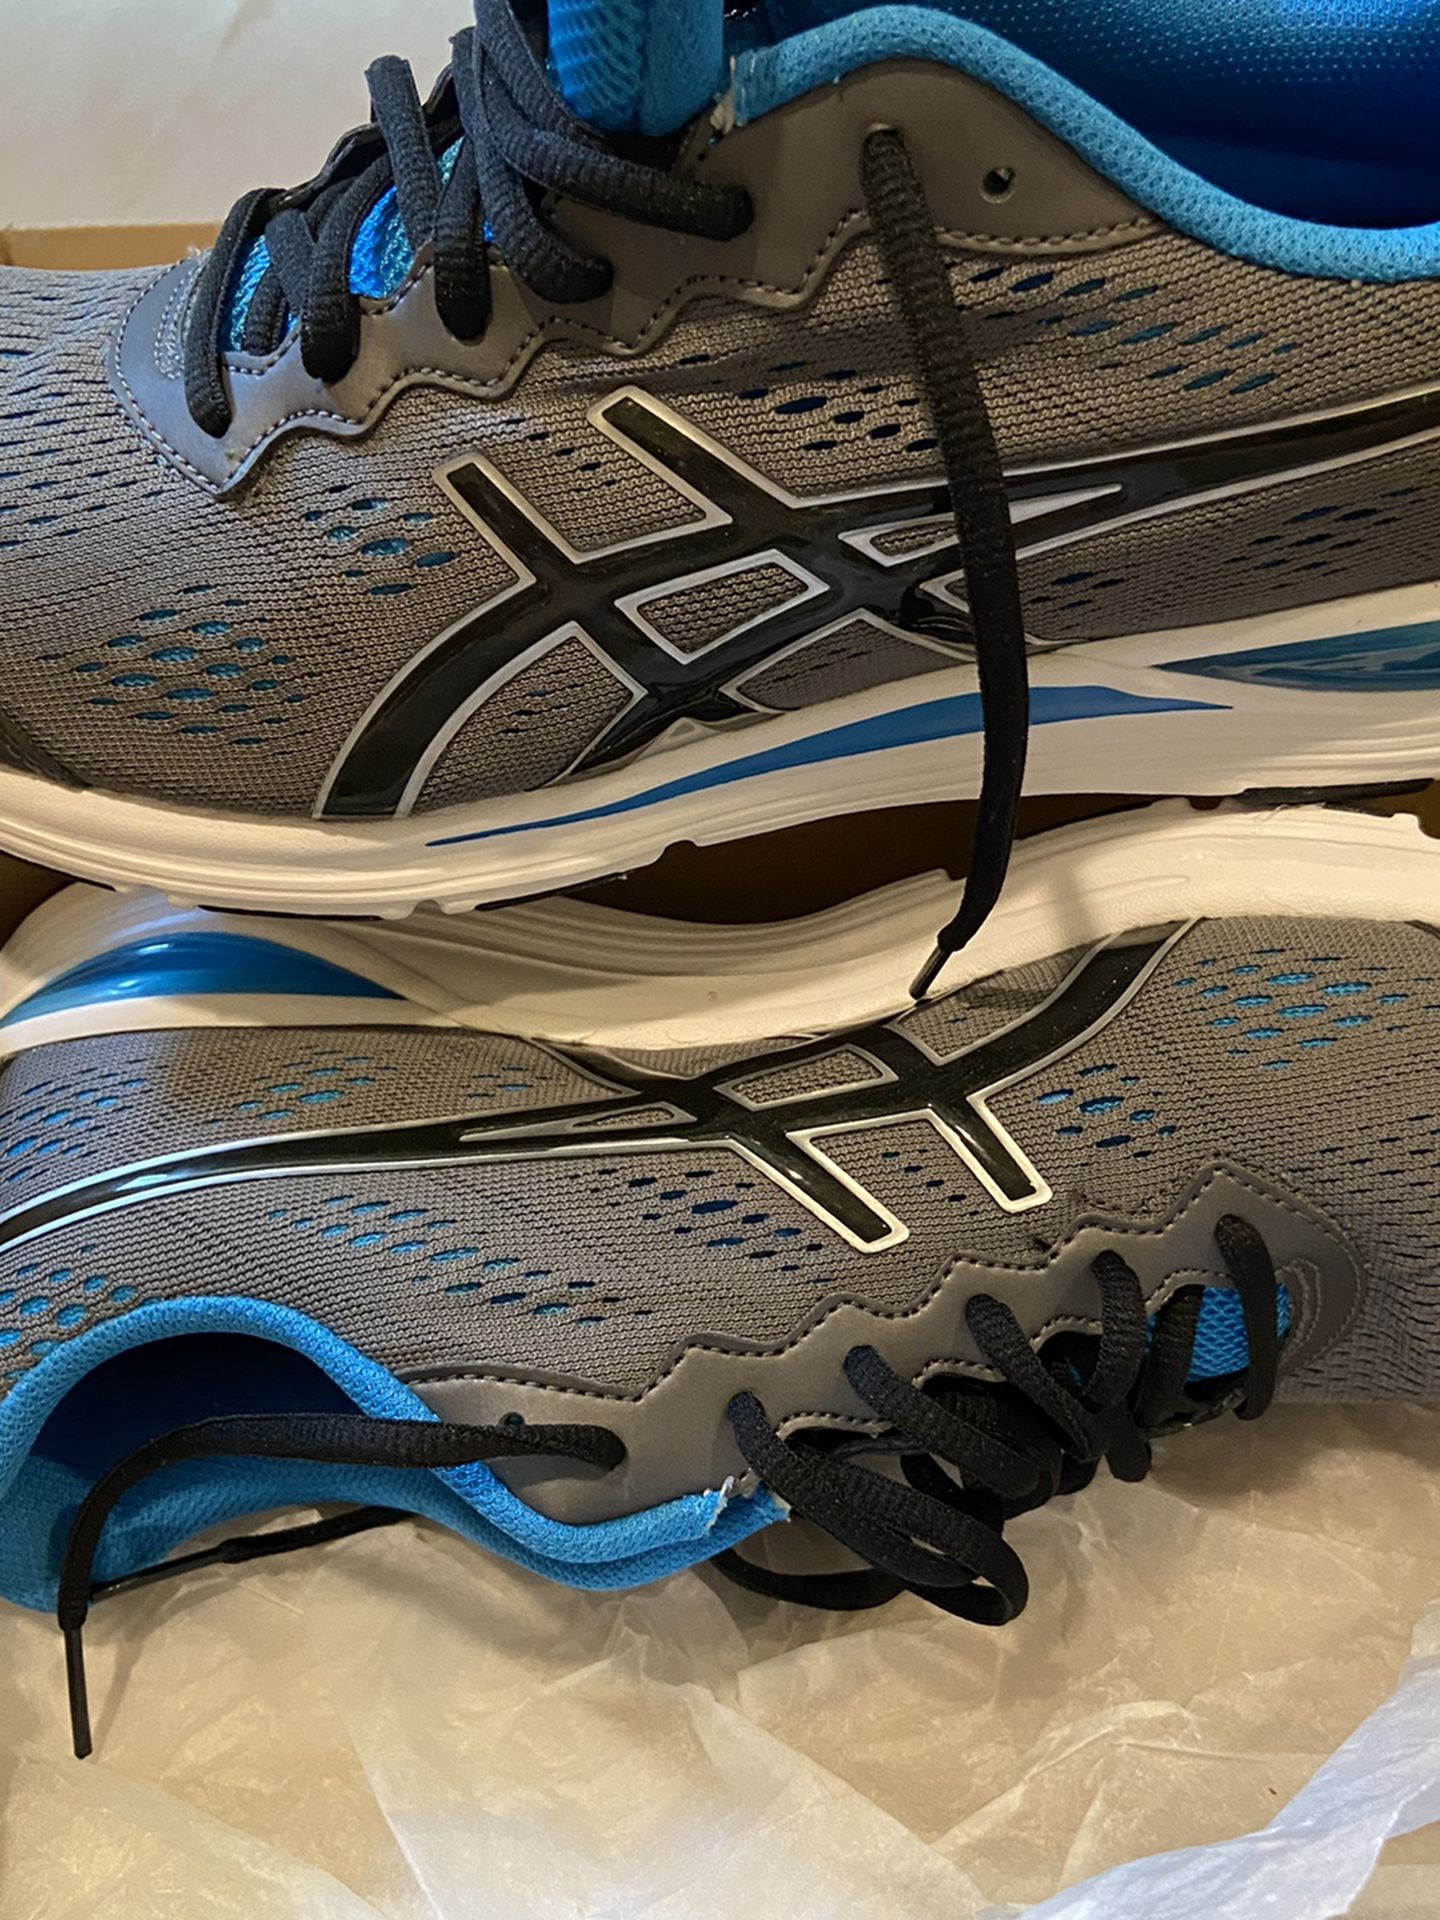 New Tennis shoes size 11 for men